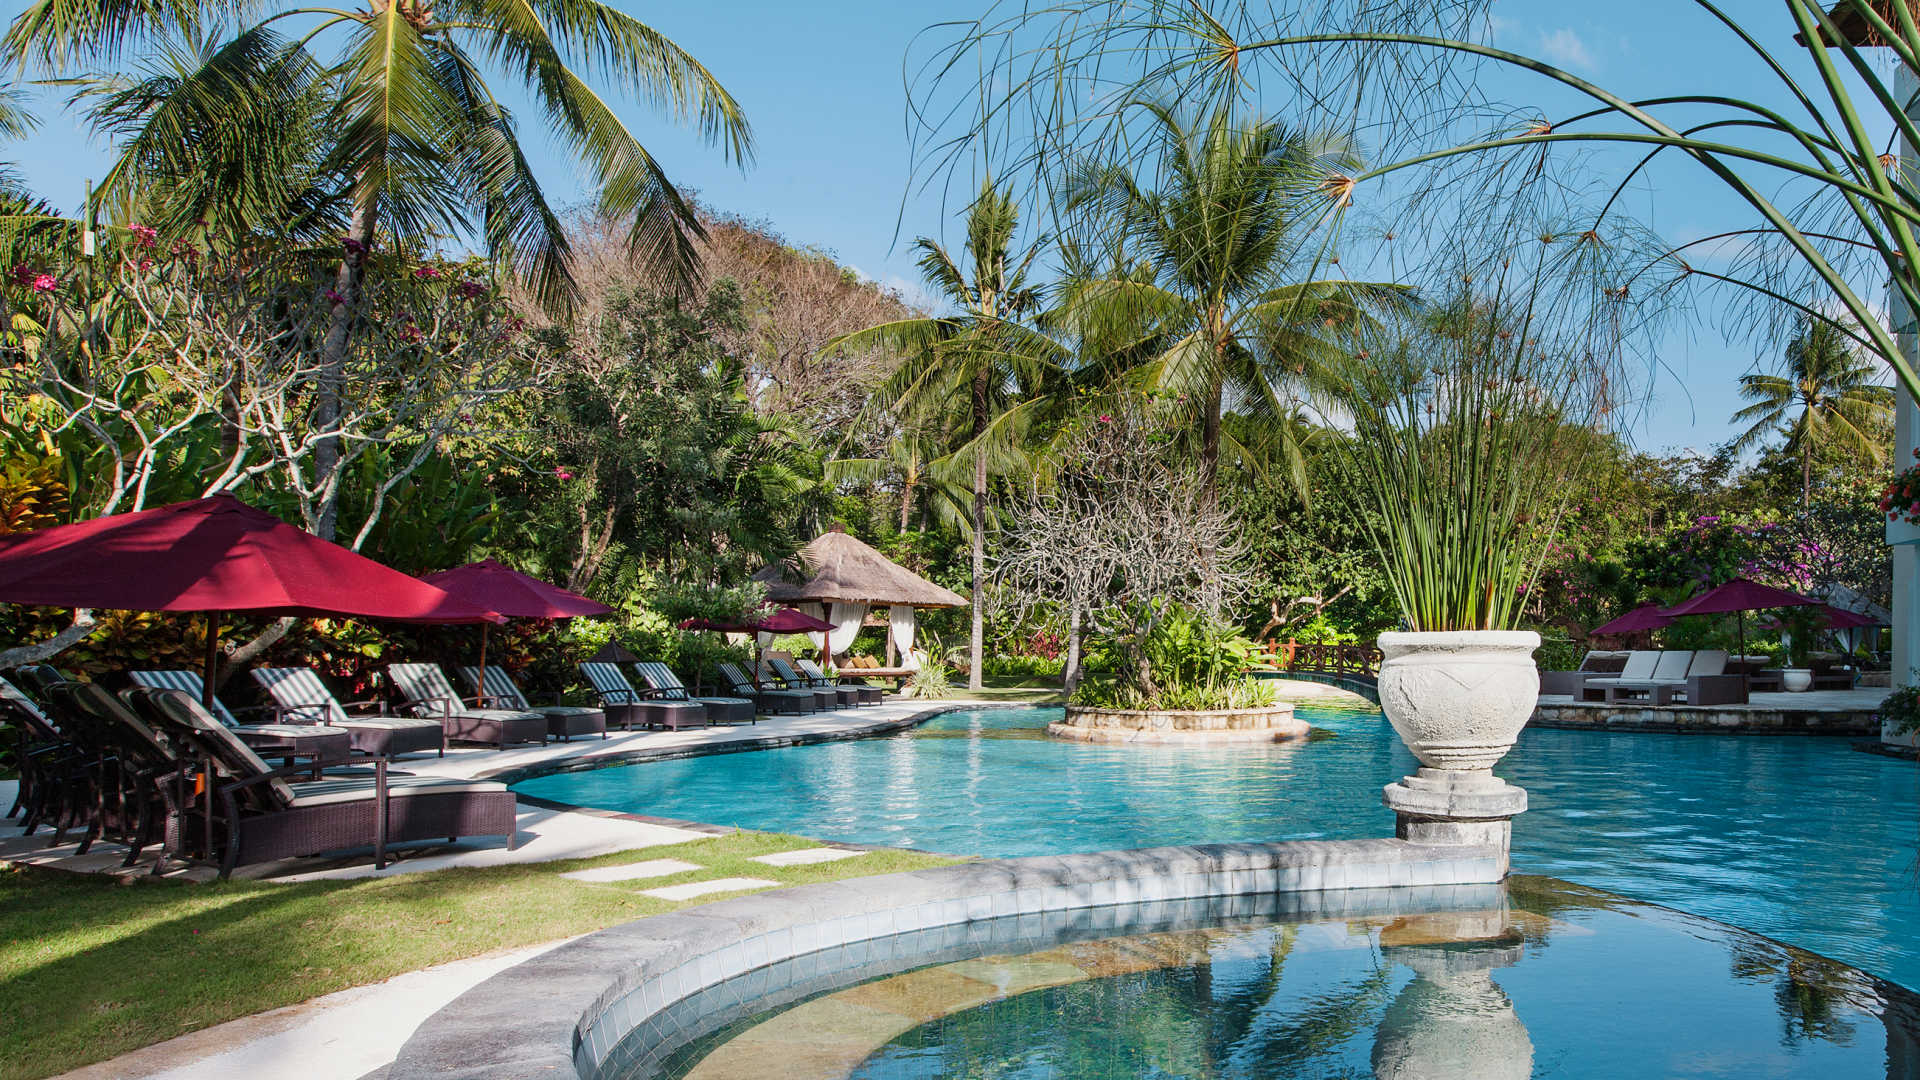 Bali The Indonesian tropical paradise. | Absolute Magazine ...  Bali The Indone...